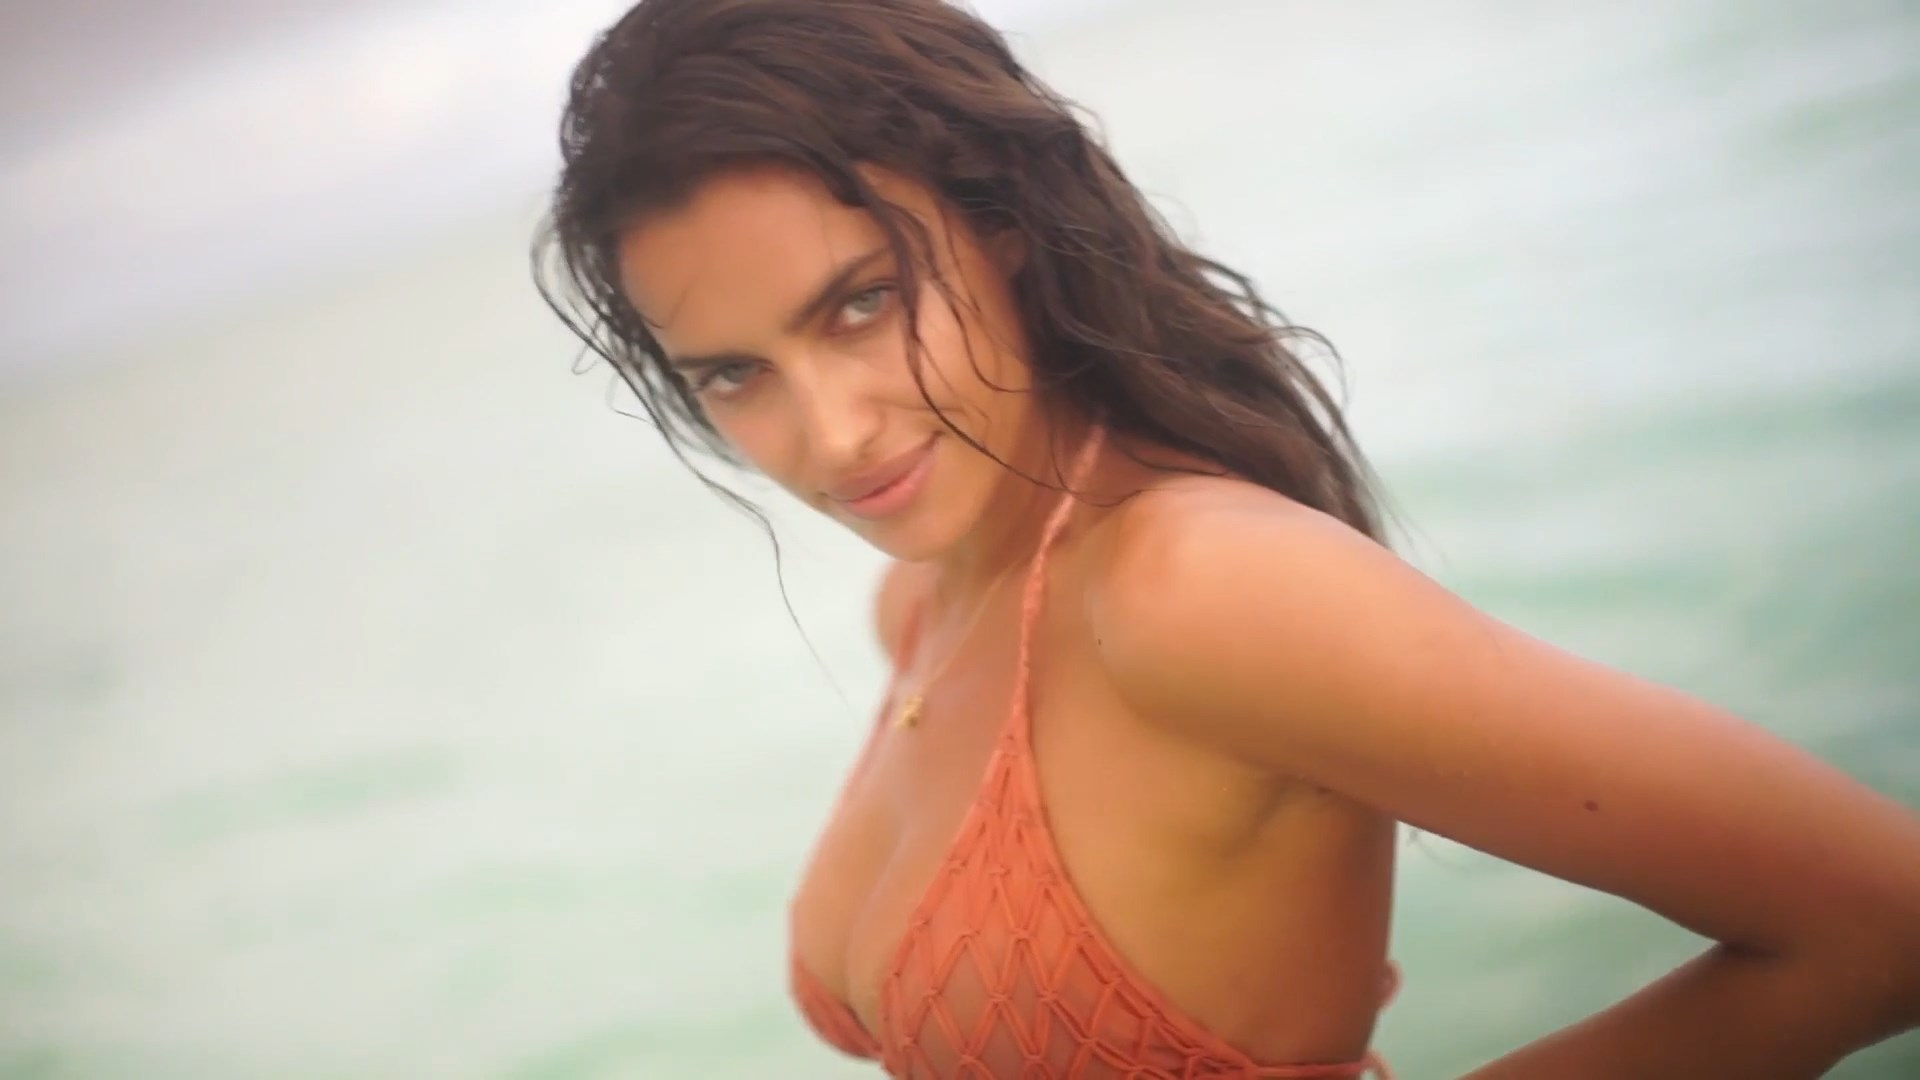 Irina Shayk nipples exposed